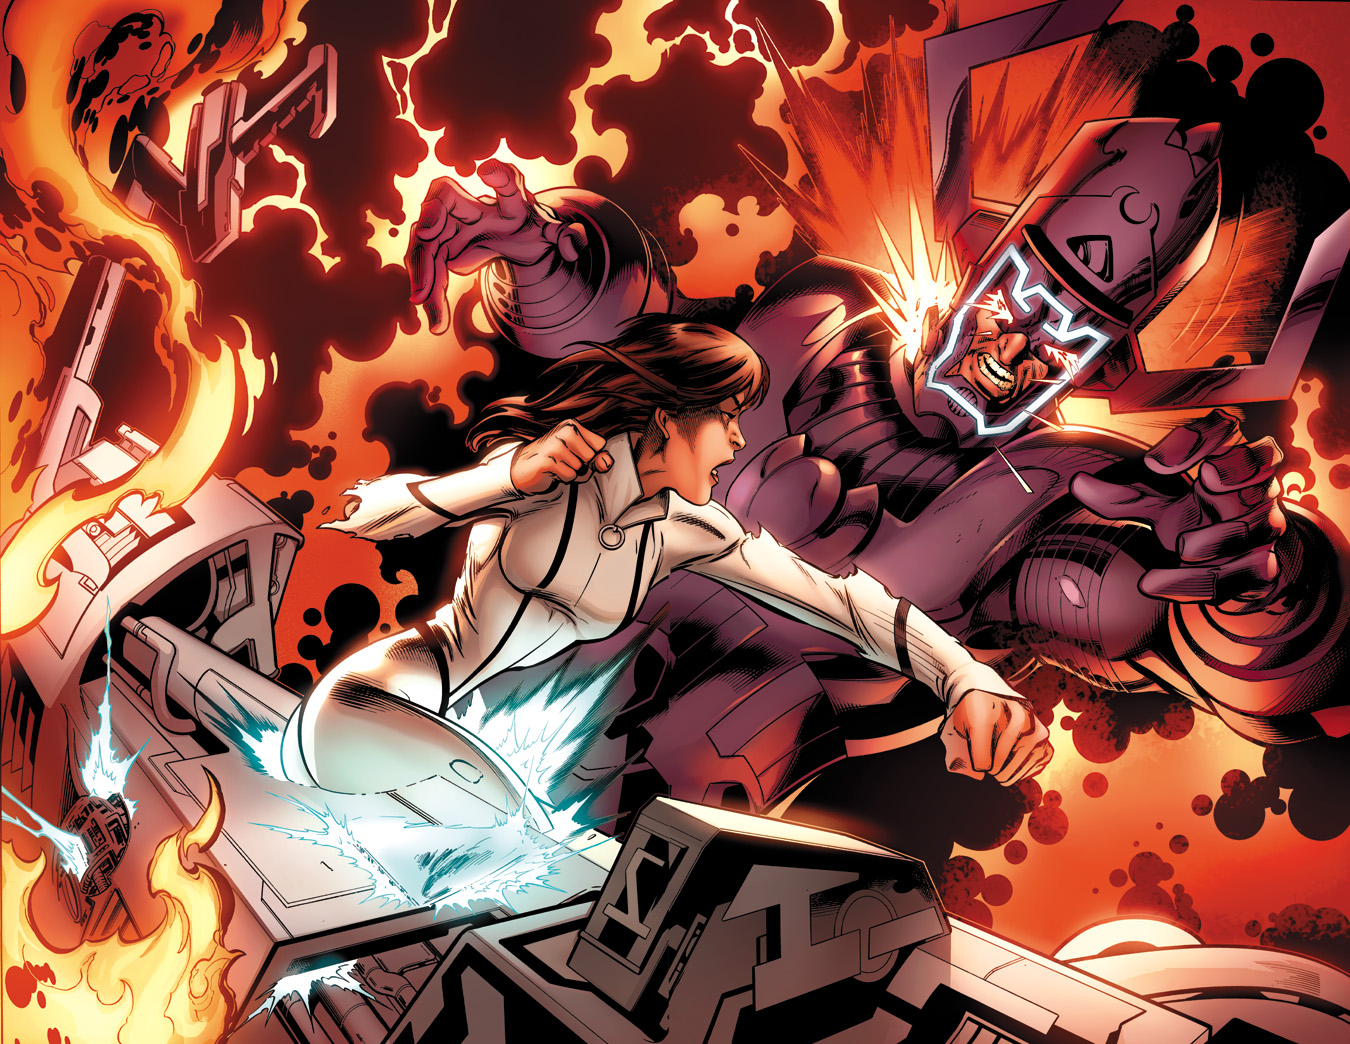 Cataclysm #5 is the End of an Era for Marvel's Ultimate Universe